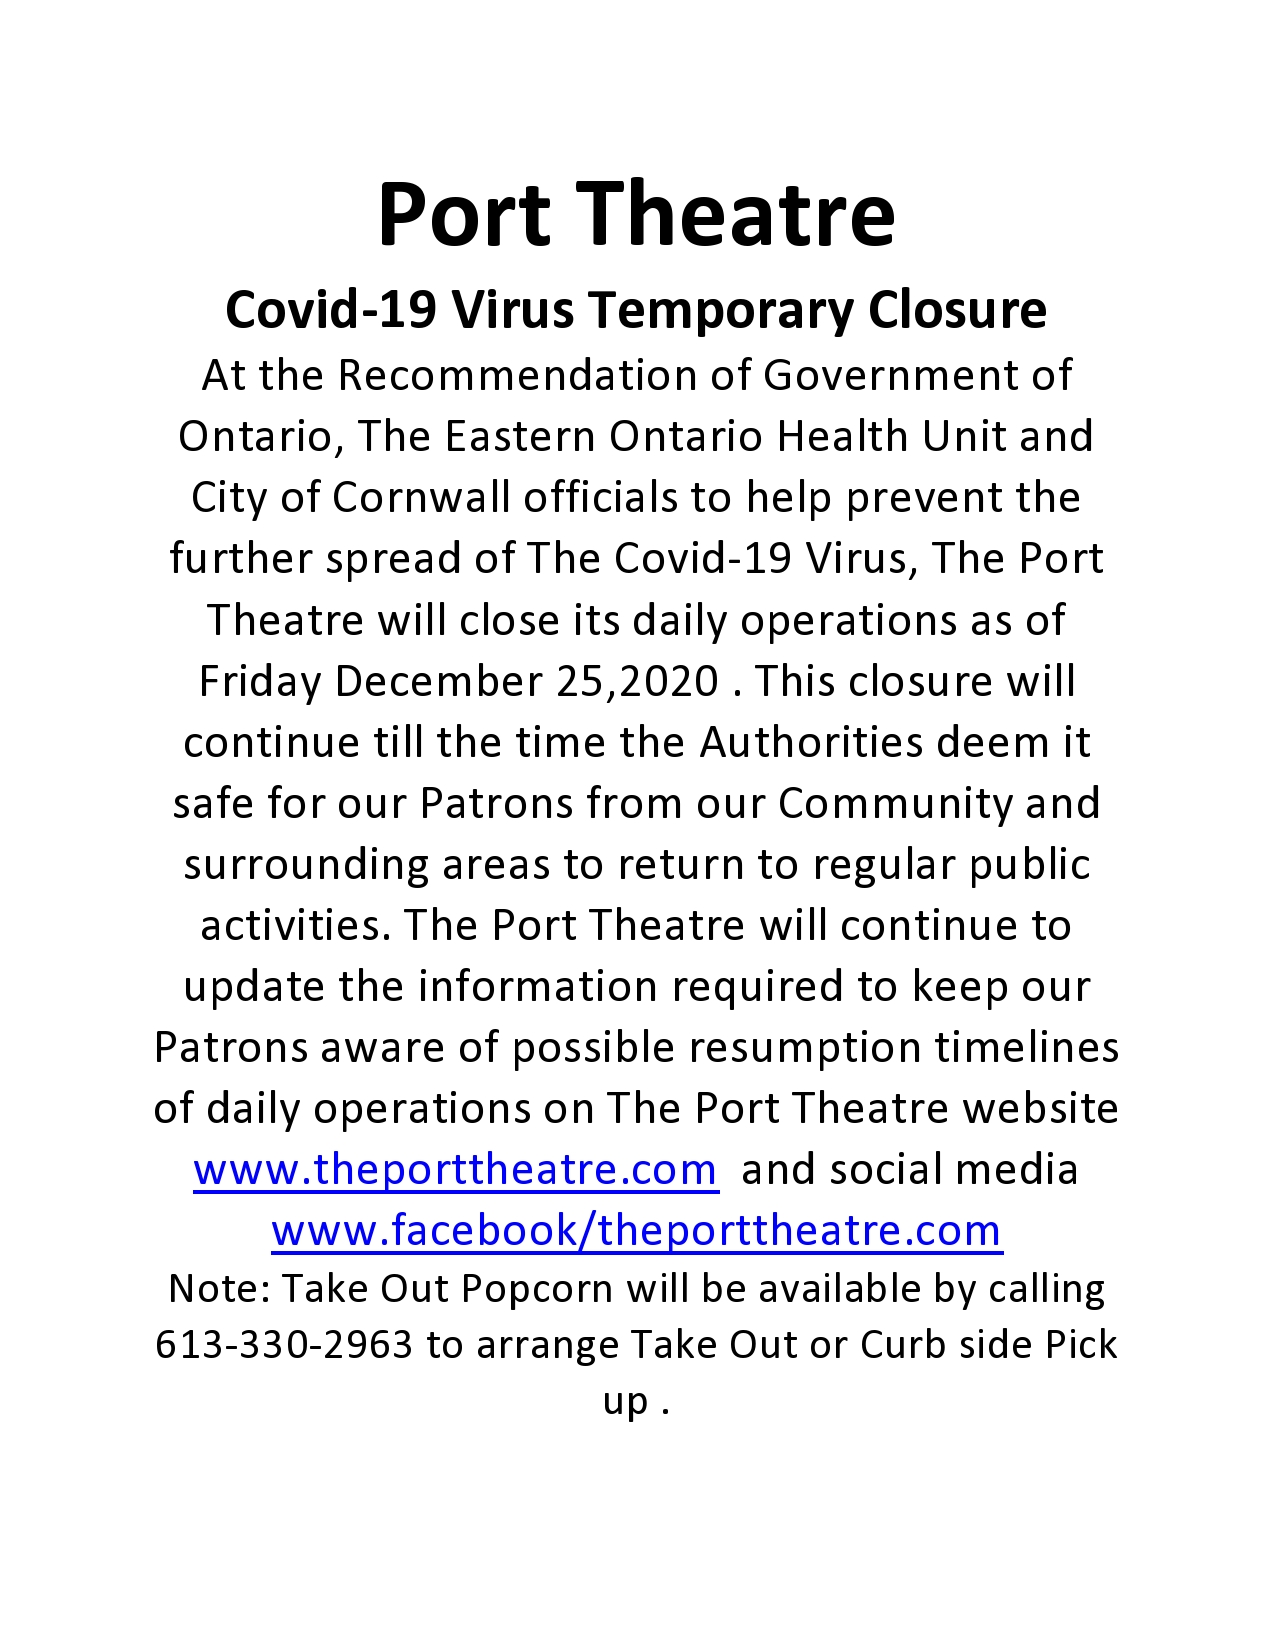 Port Theatre Covid-19 Temporary Closure Christmas-page0001